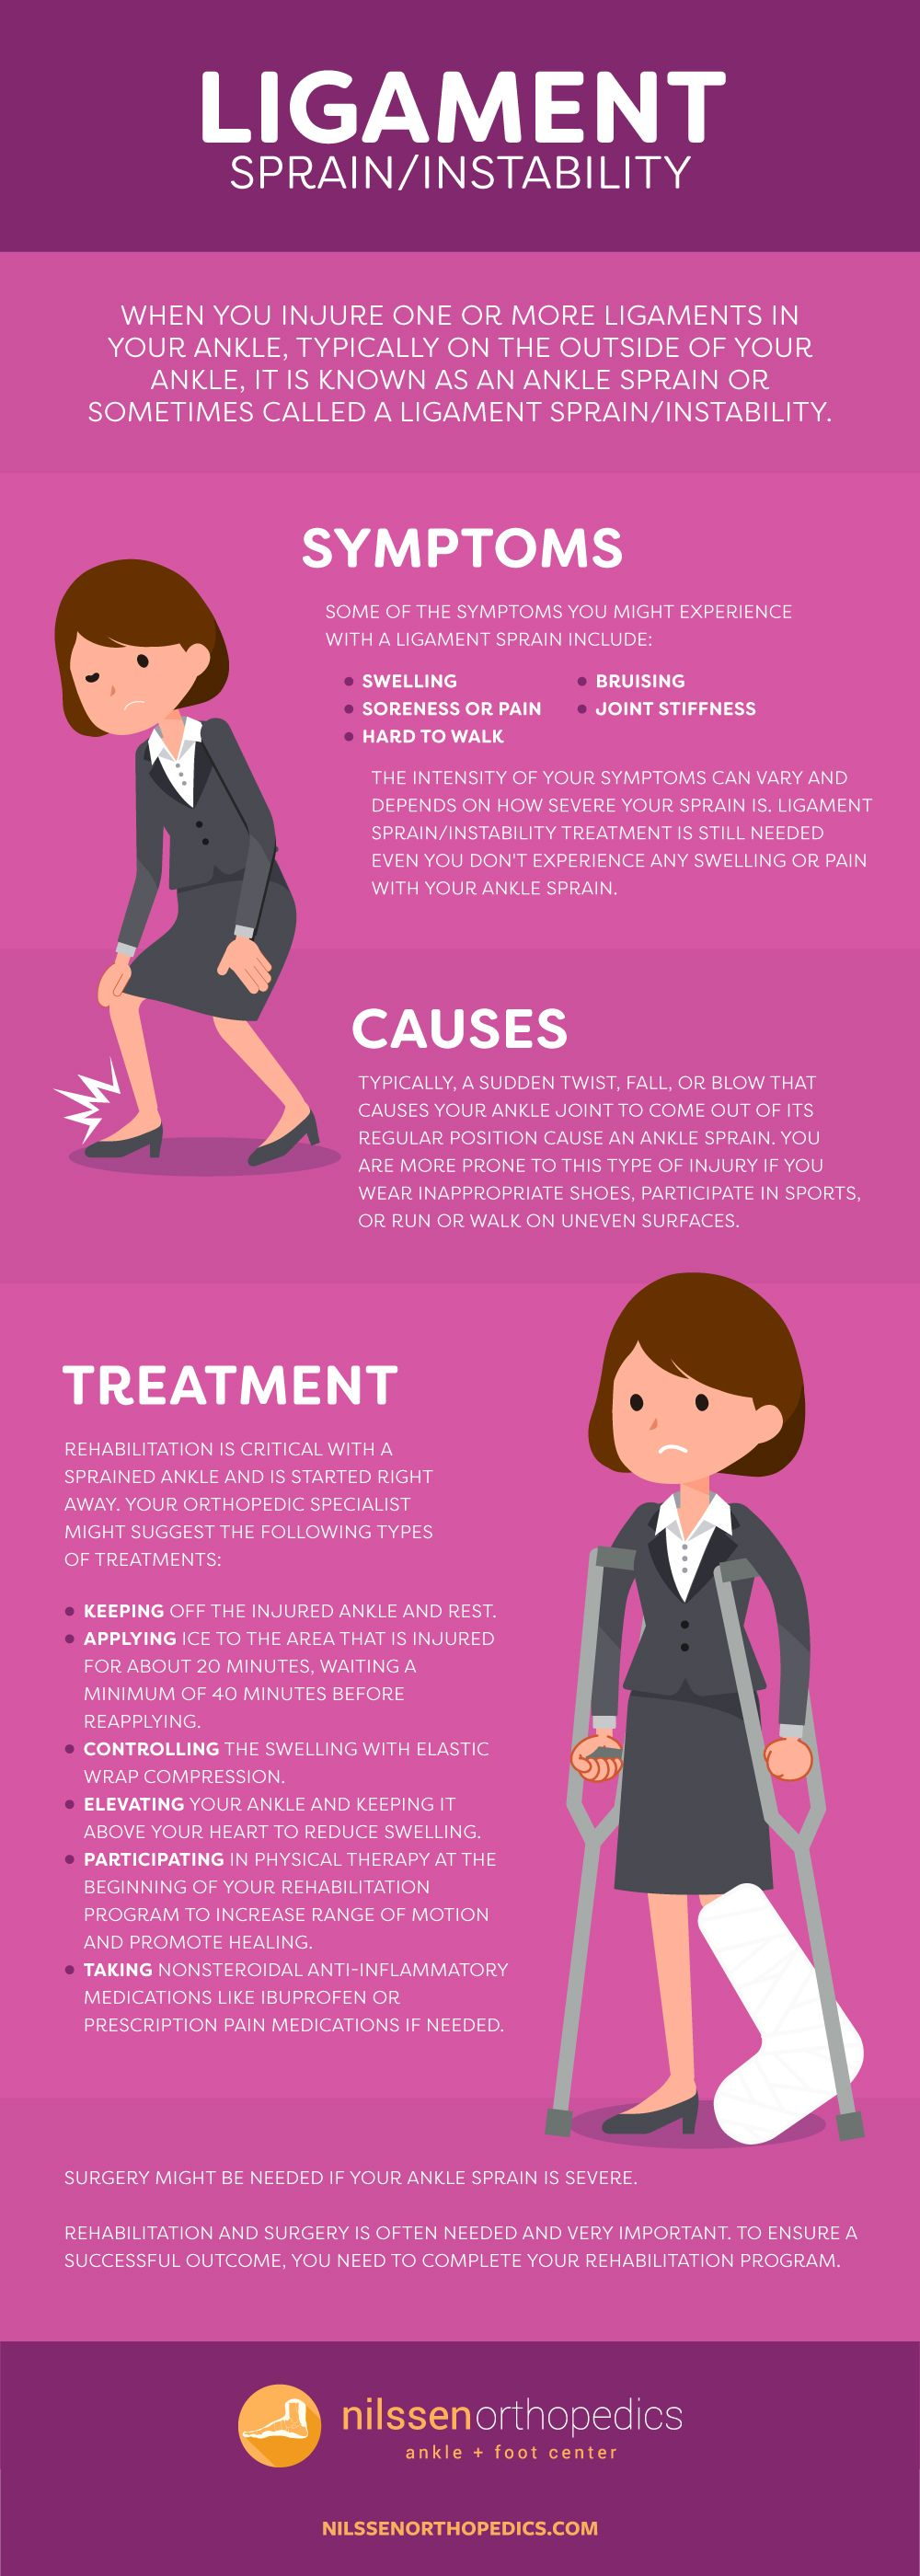 Not all ankle sprains are the same; some can be worse than others. Your ankle sprain severity depend